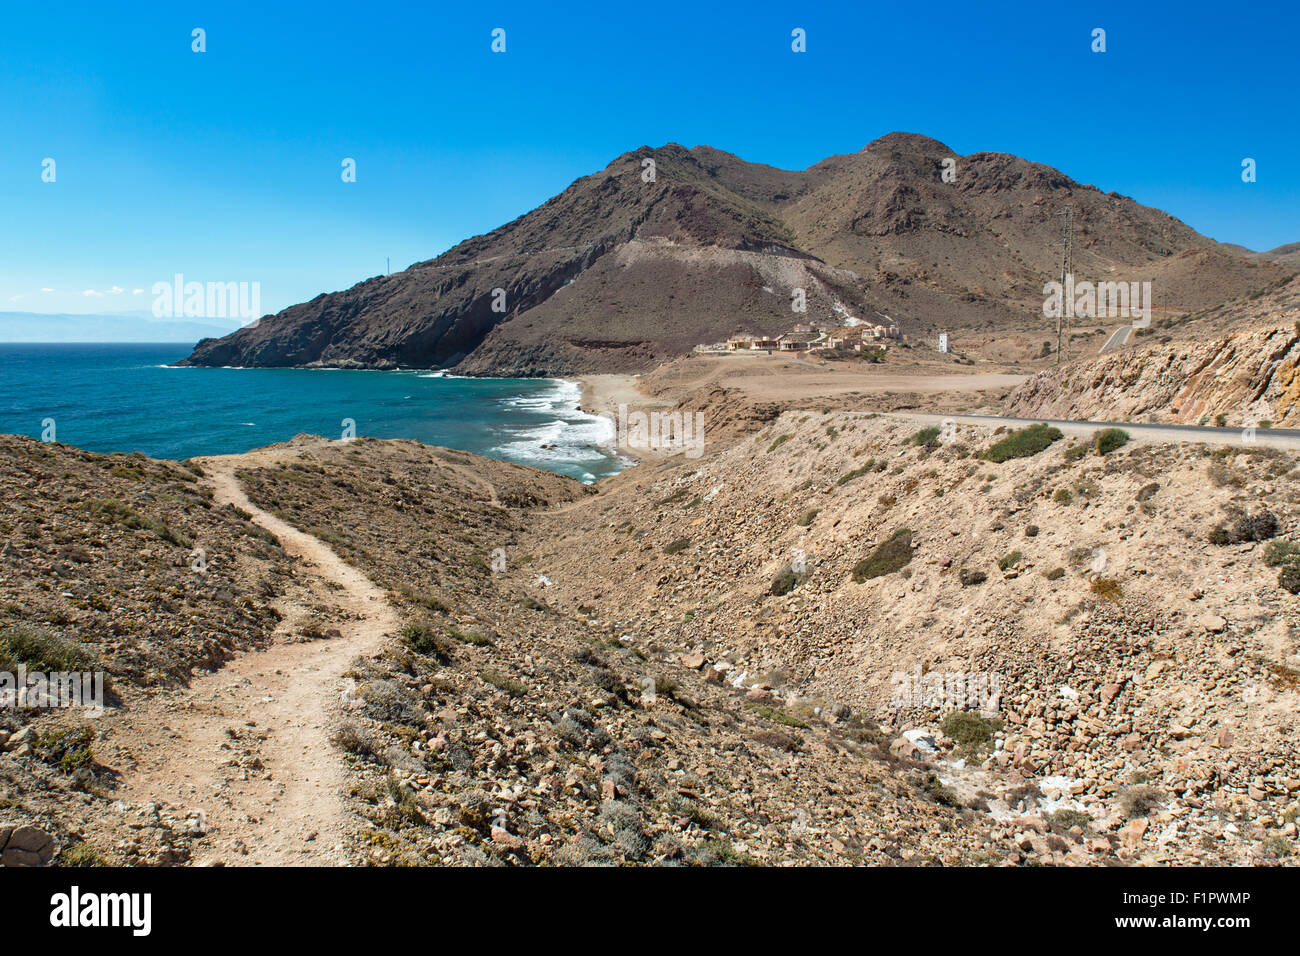 Cove at Cabo del Gata, Almeria, Spain - Stock Image